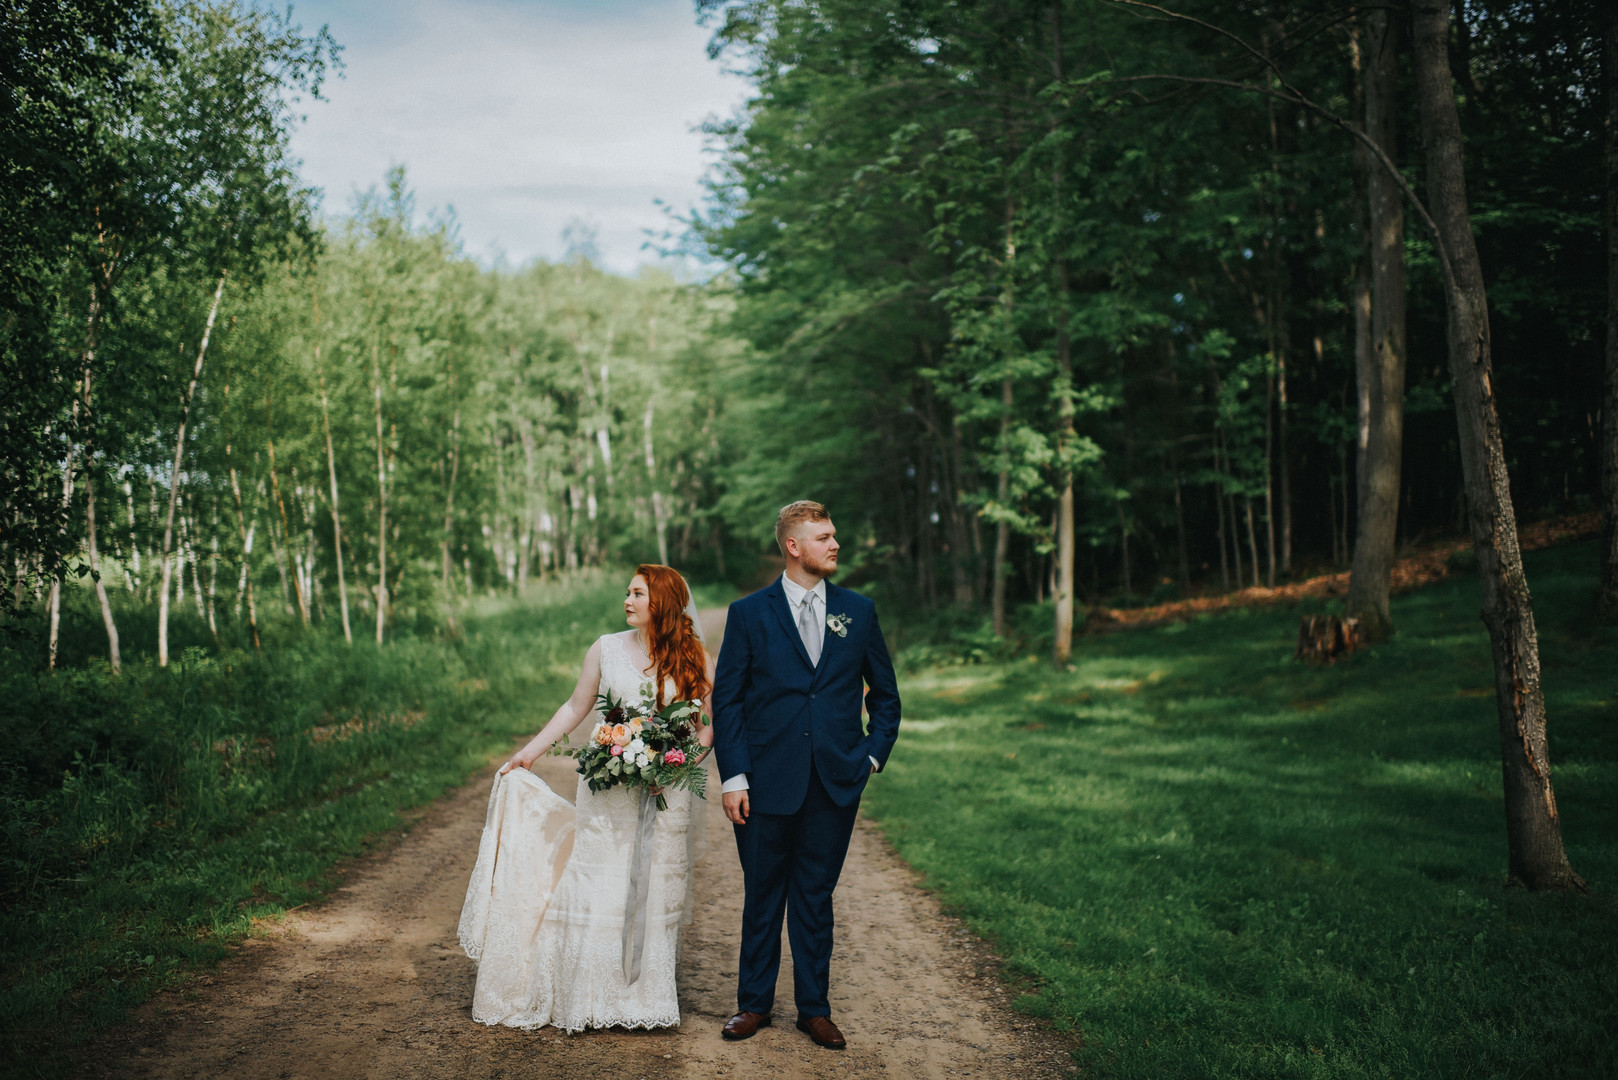 Cadott Wisconsin Outdoor Unposed Lifestyle Wedding Photographer Dixon's Apple Orchard